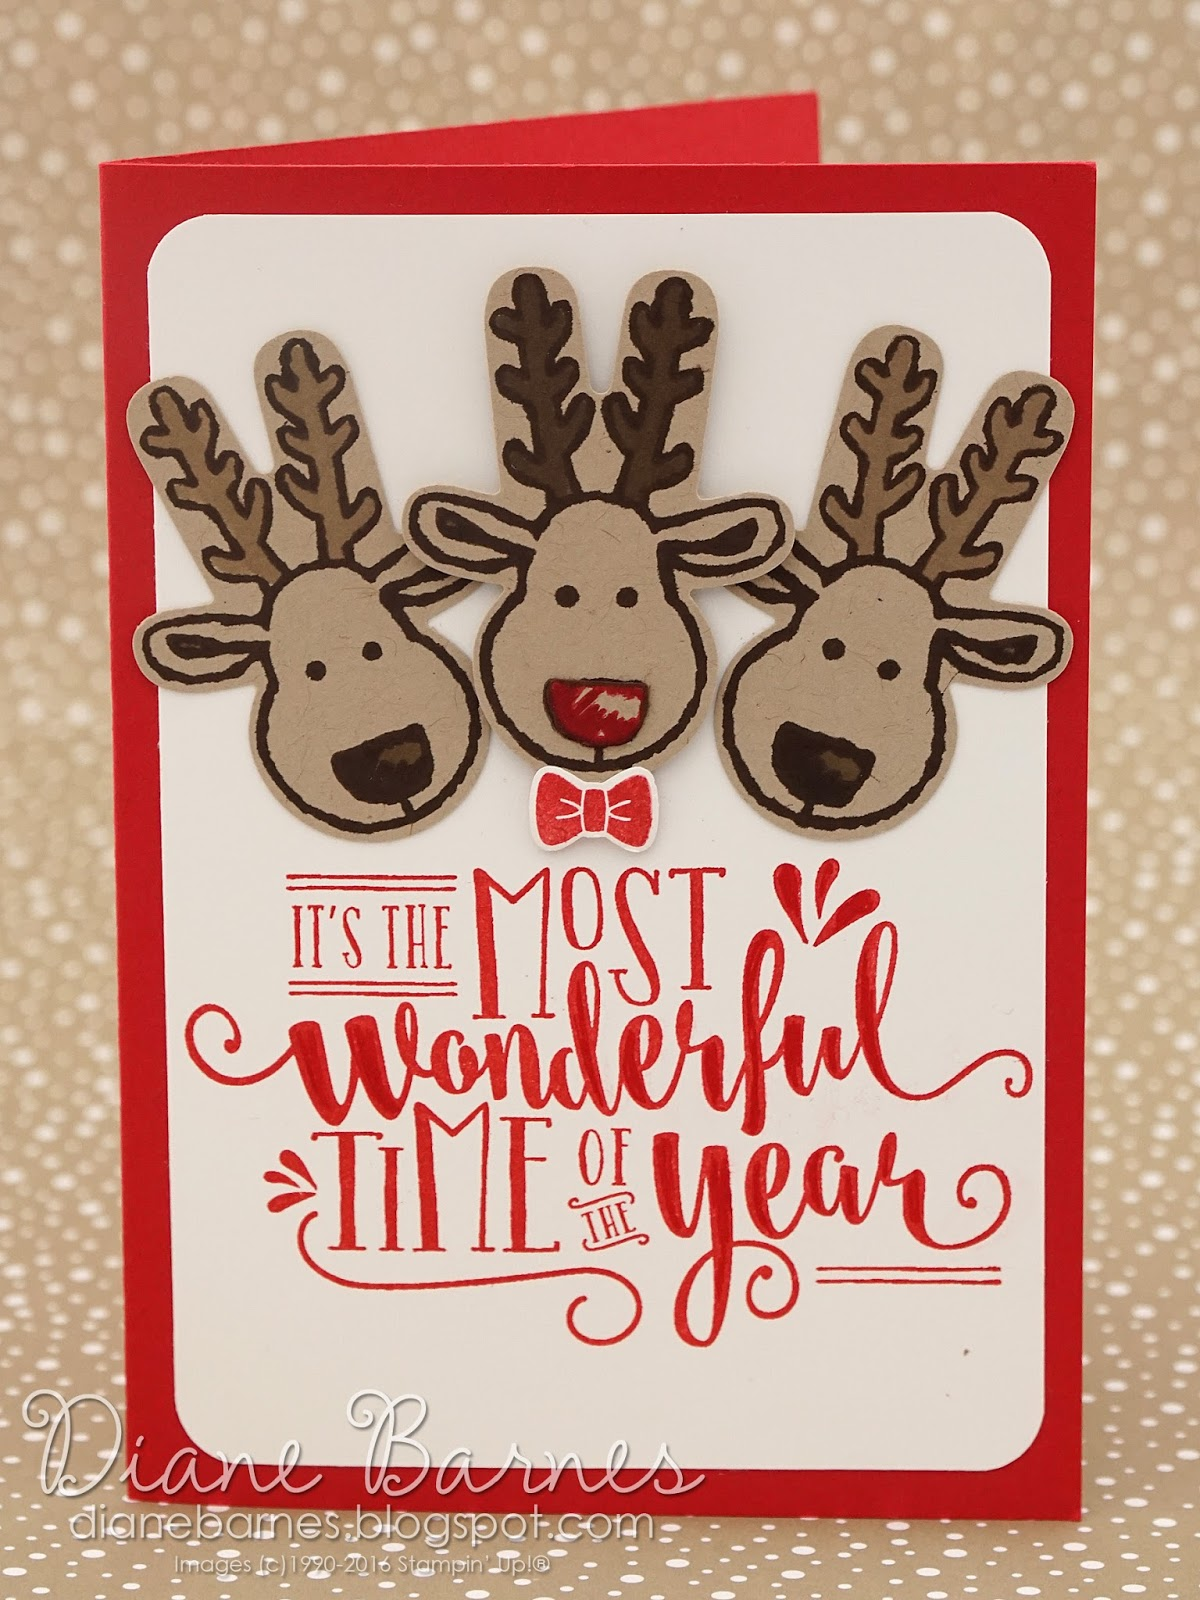 colour me happy: More quick & easy reindeer Christmas cards